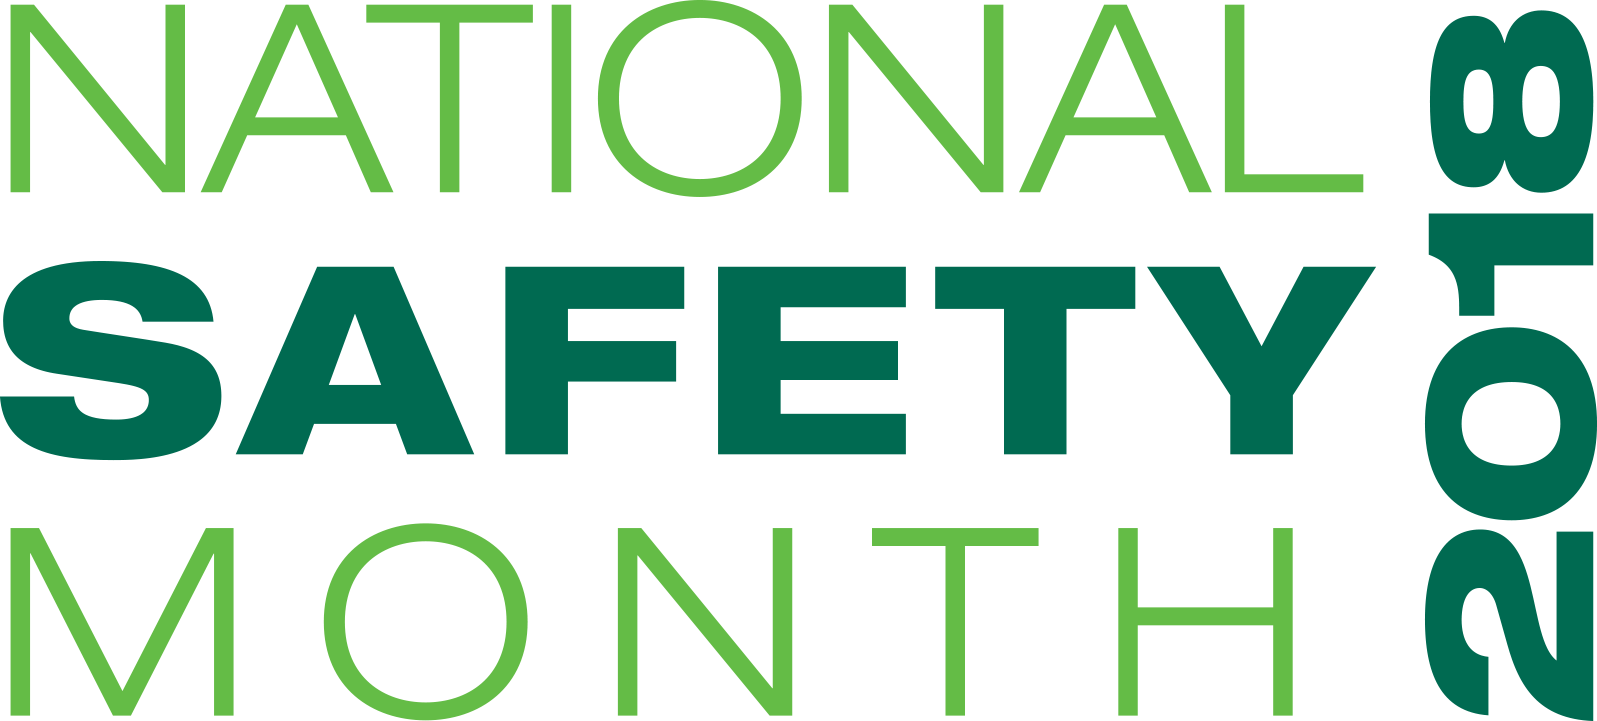 National-Safety-Month-Logo-NSC-2018.jpg